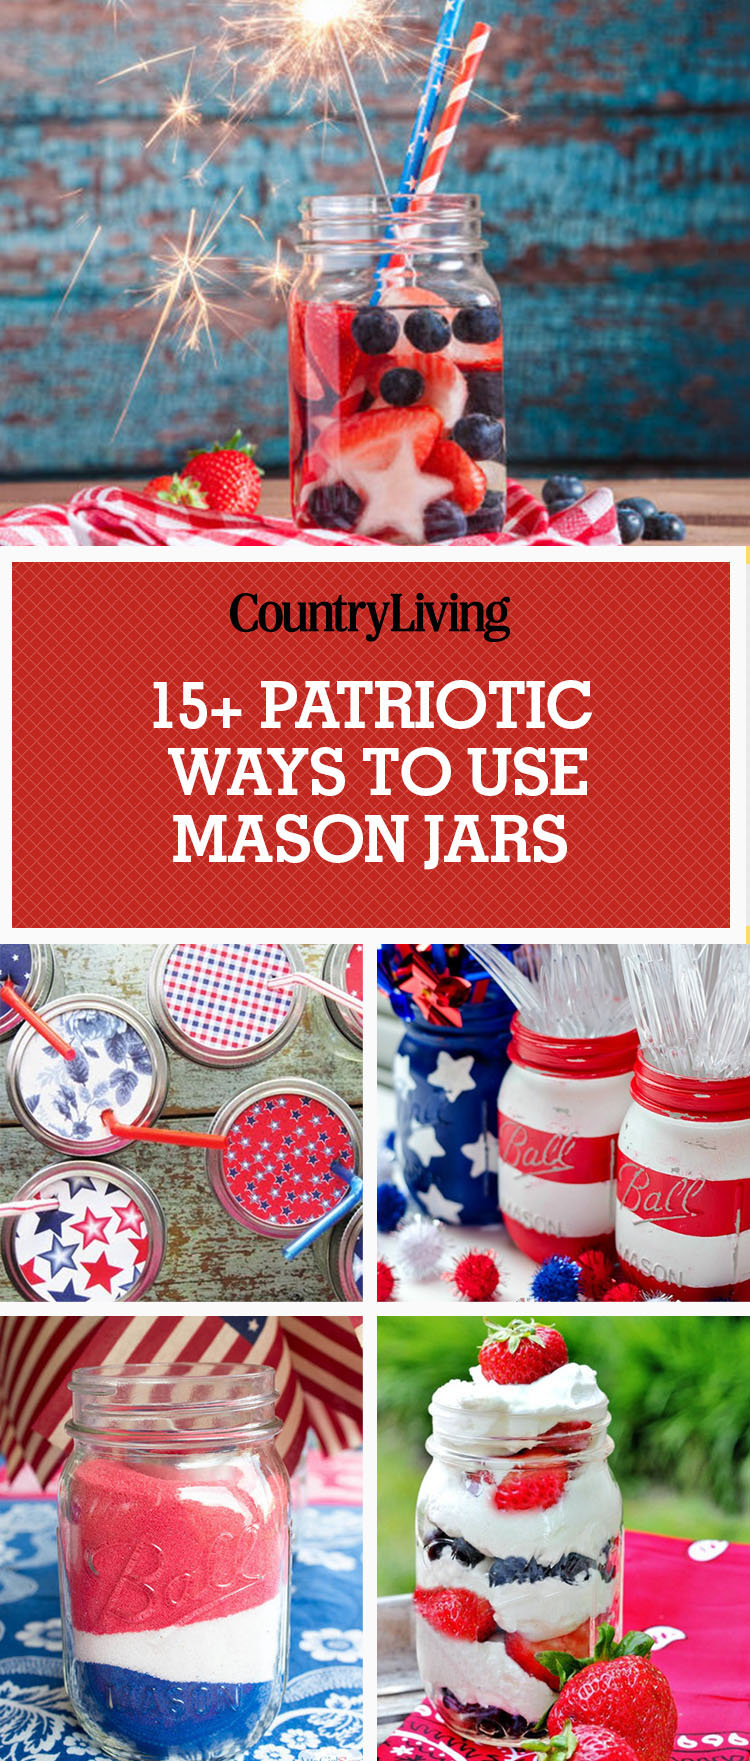 4th Of July Mason Jars Patriotic Mason Jar Craft Amp Food